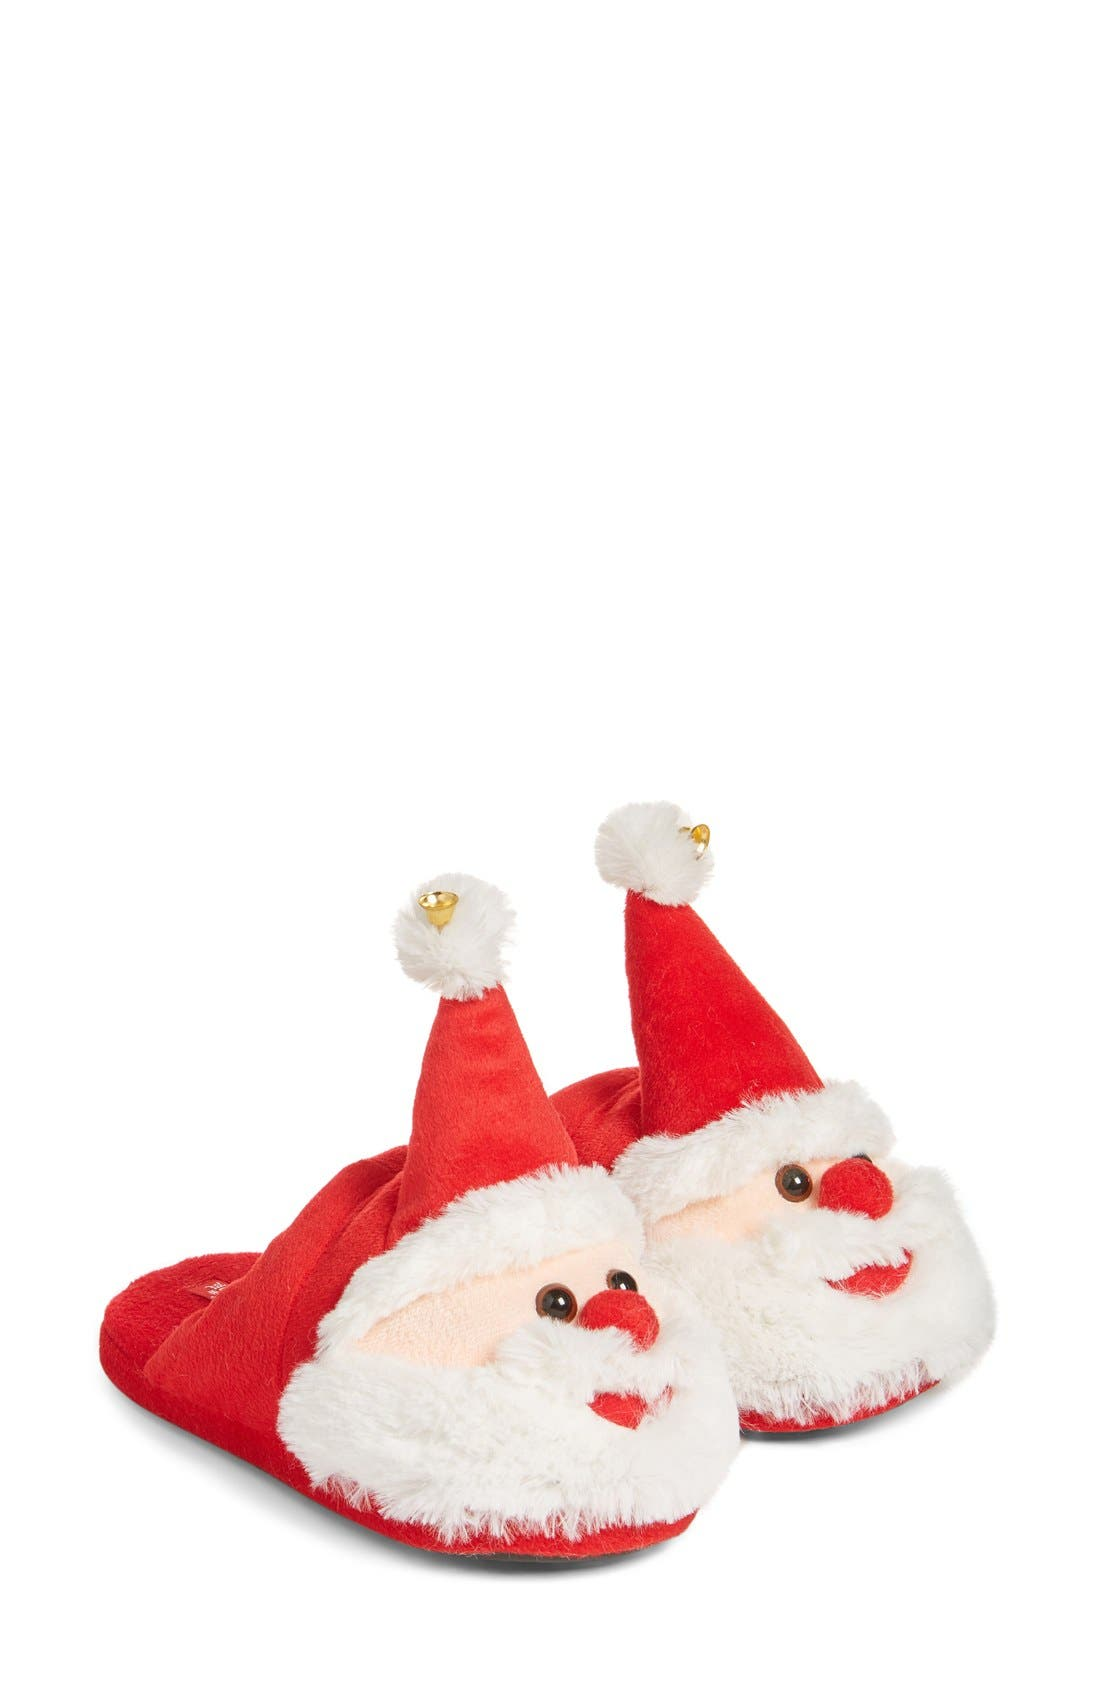 UGLY CHRISTMAS SLIPPERS,                             Santa Scuff Slippers,                             Main thumbnail 1, color,                             600